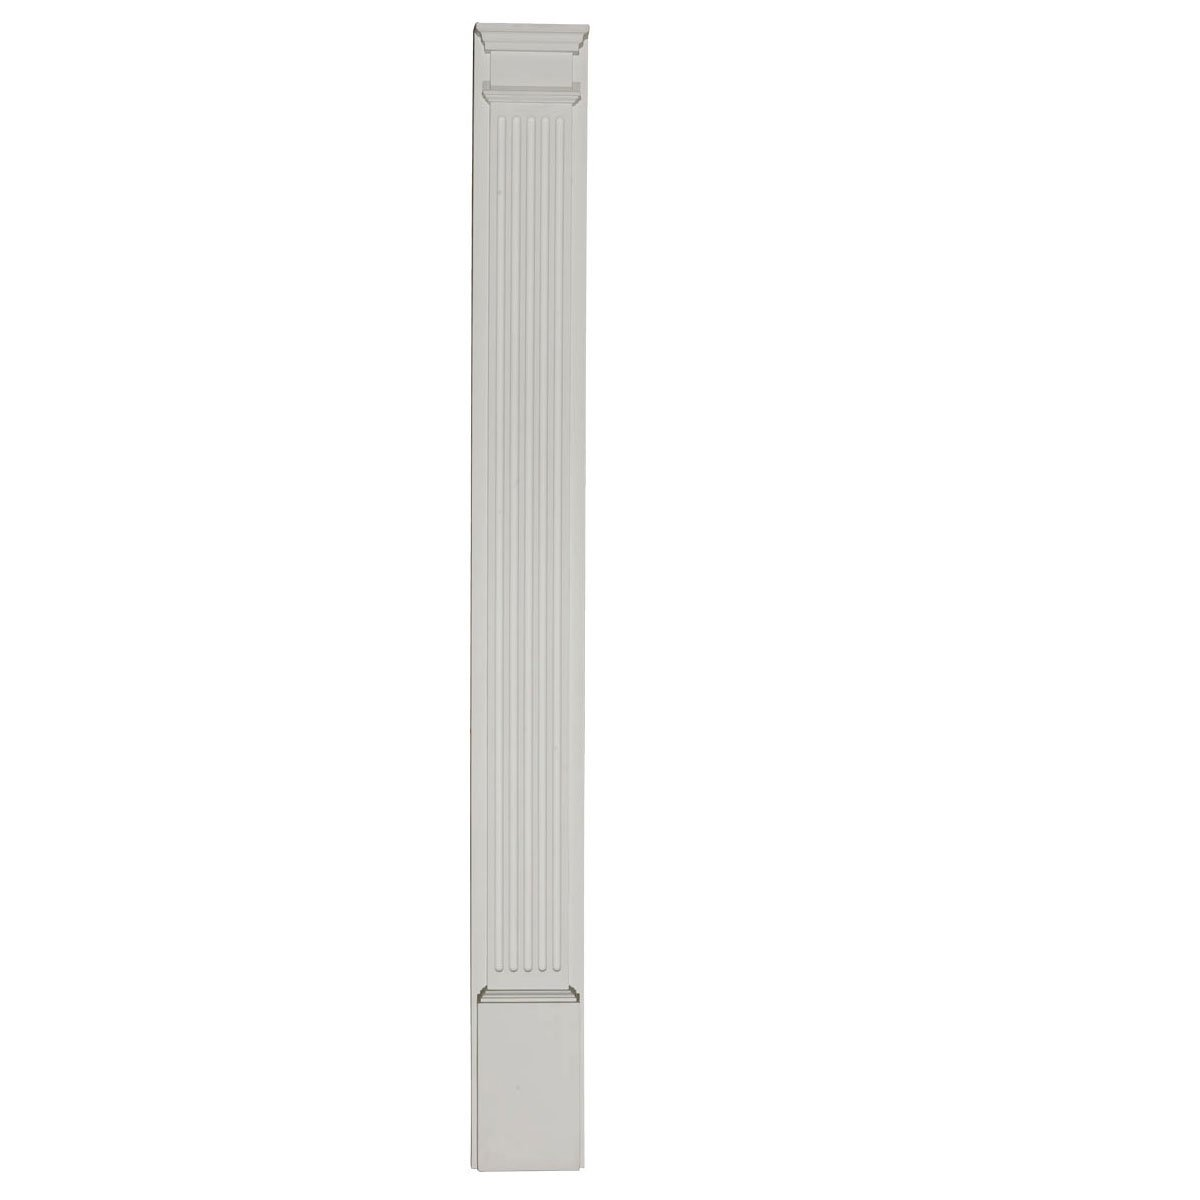 Ekena Millwork PIL05X96X02 5-Inch W x 96-Inch H x 2-Inch D with 13 1/4-Inch Attached Plinth, Fluted Pilaster